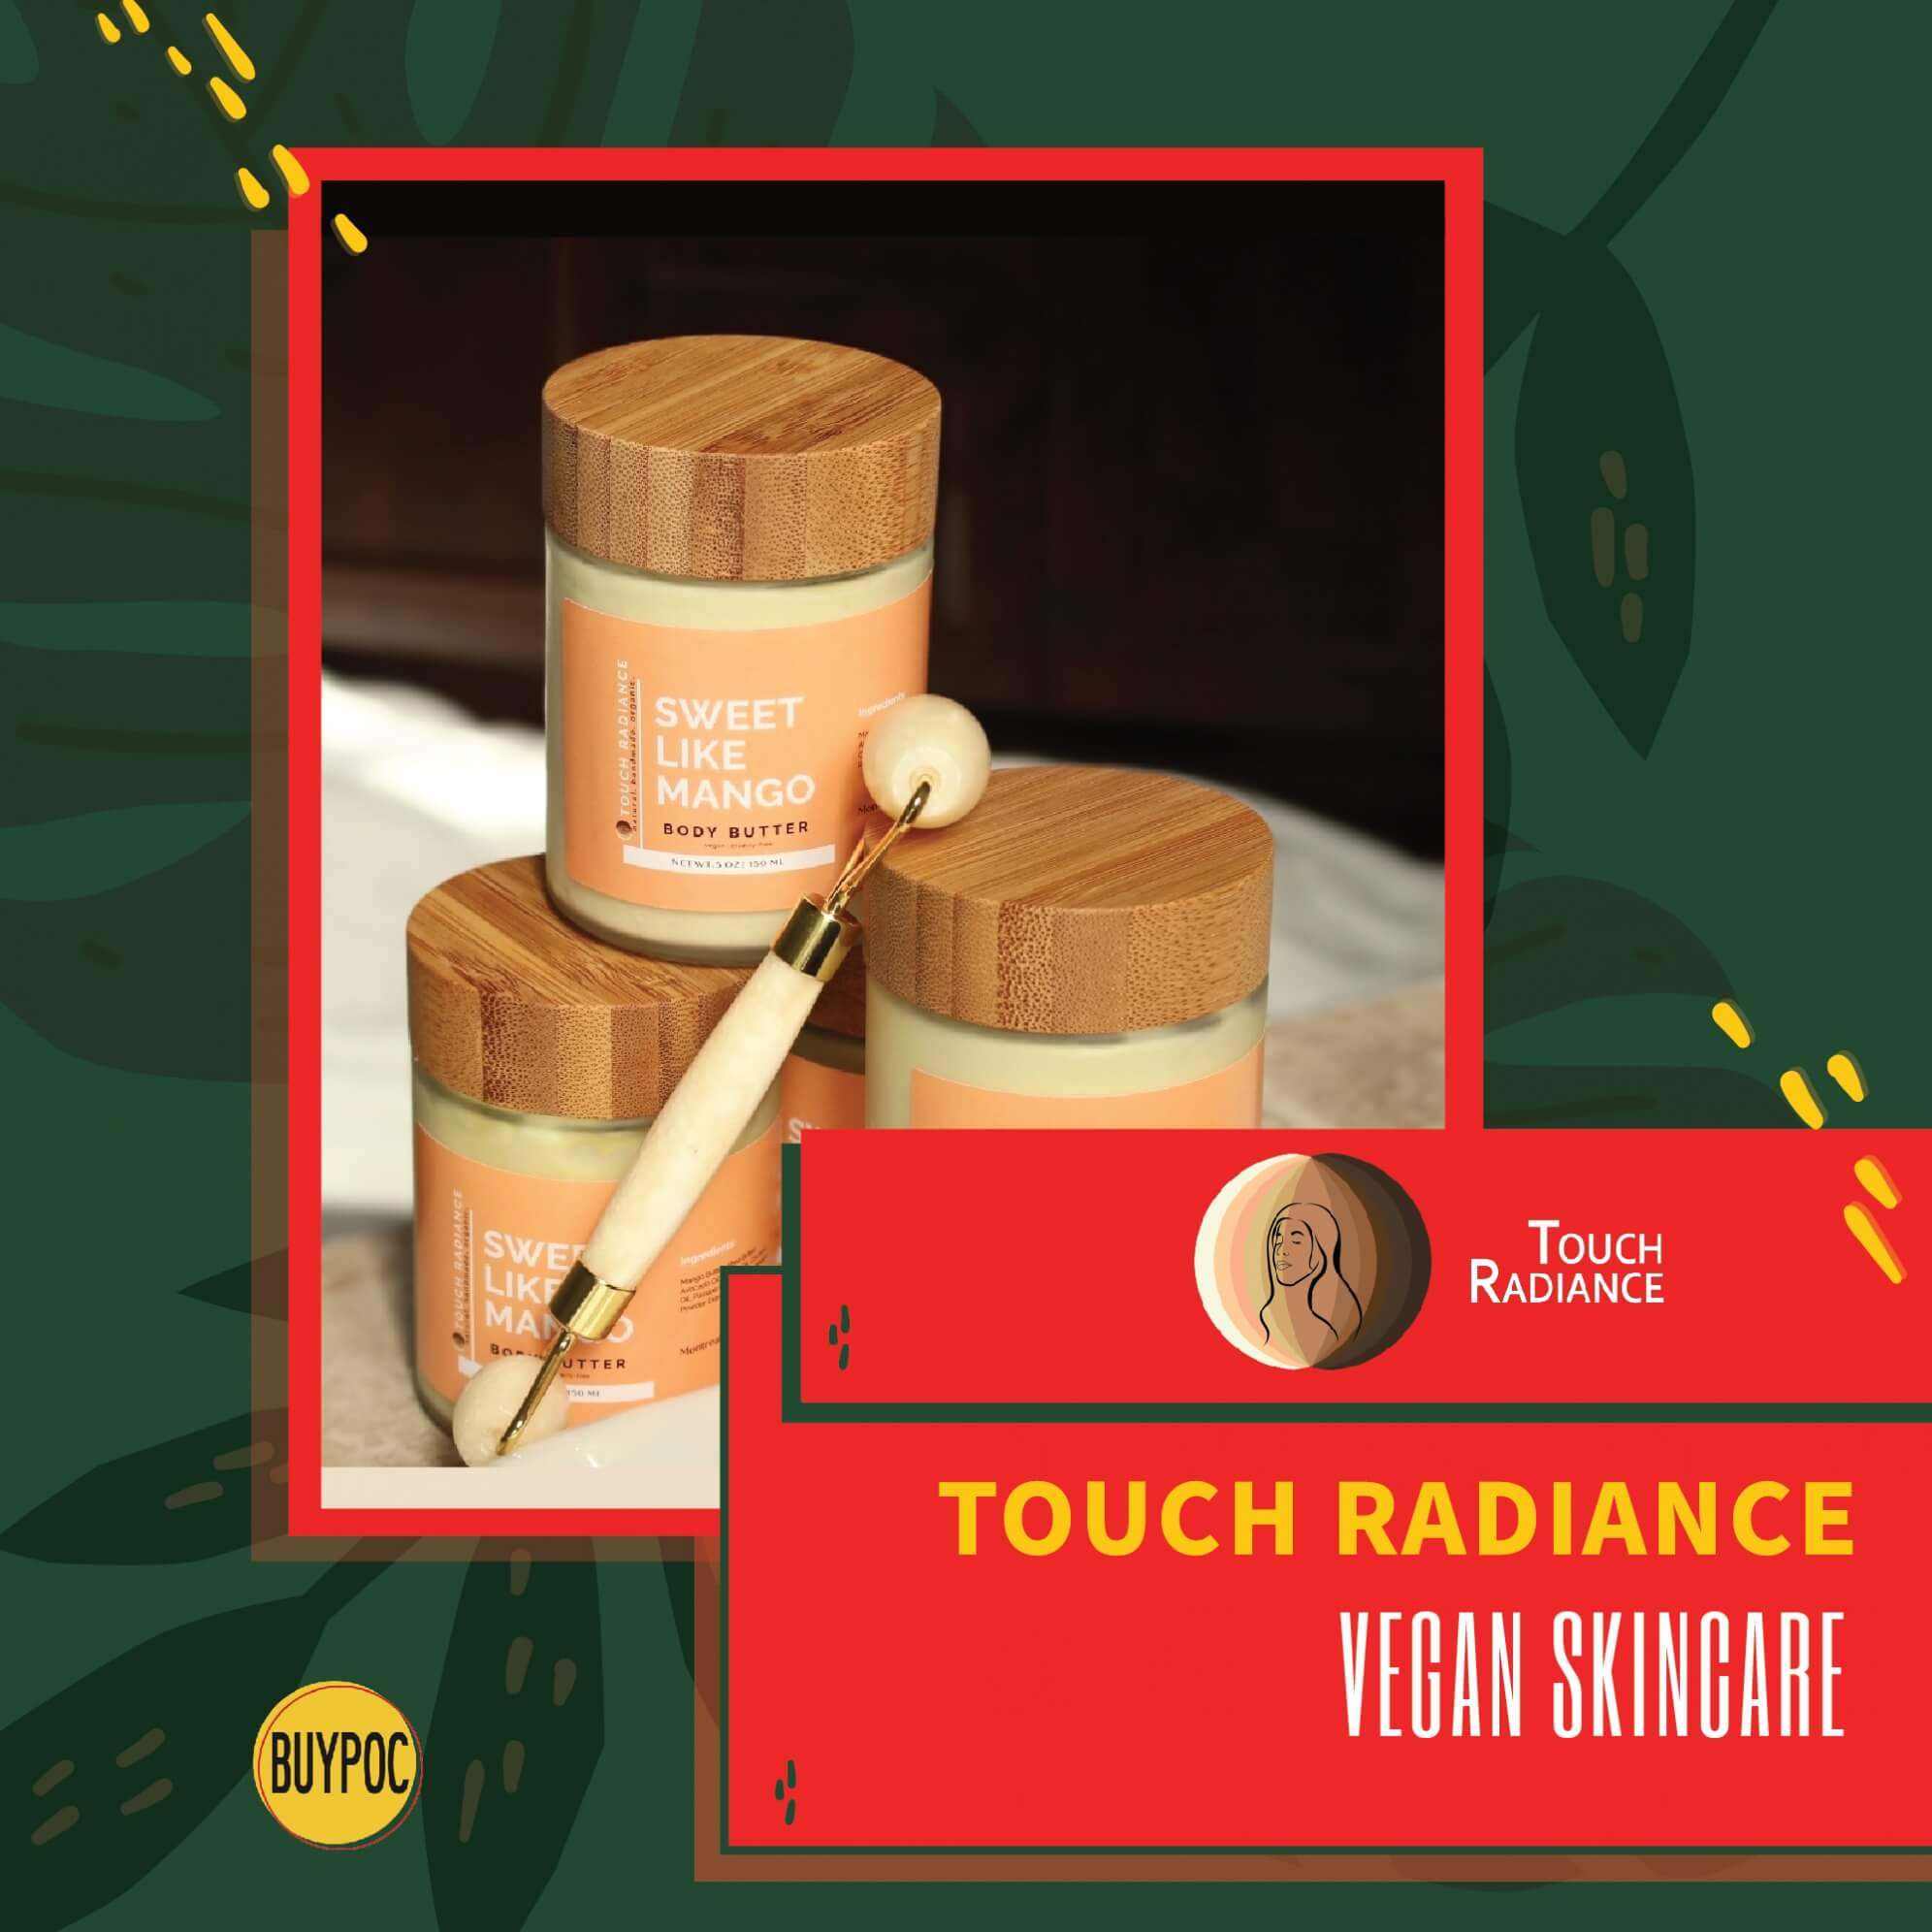 Touch Radiance